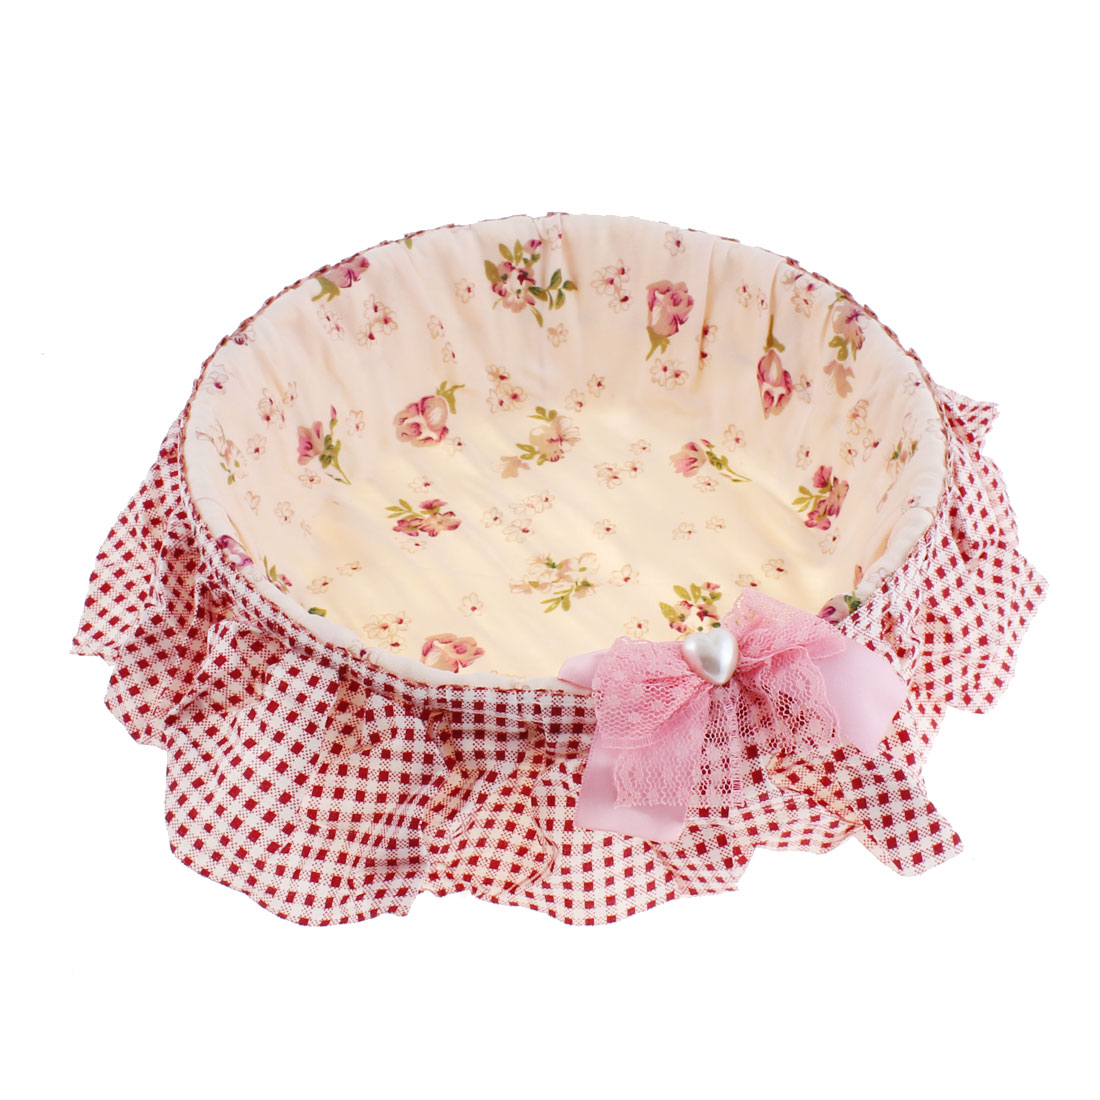 Flower Pattern Jewelry Sundries Handcrafted Storage Basket Holder Pink 21cm Dia